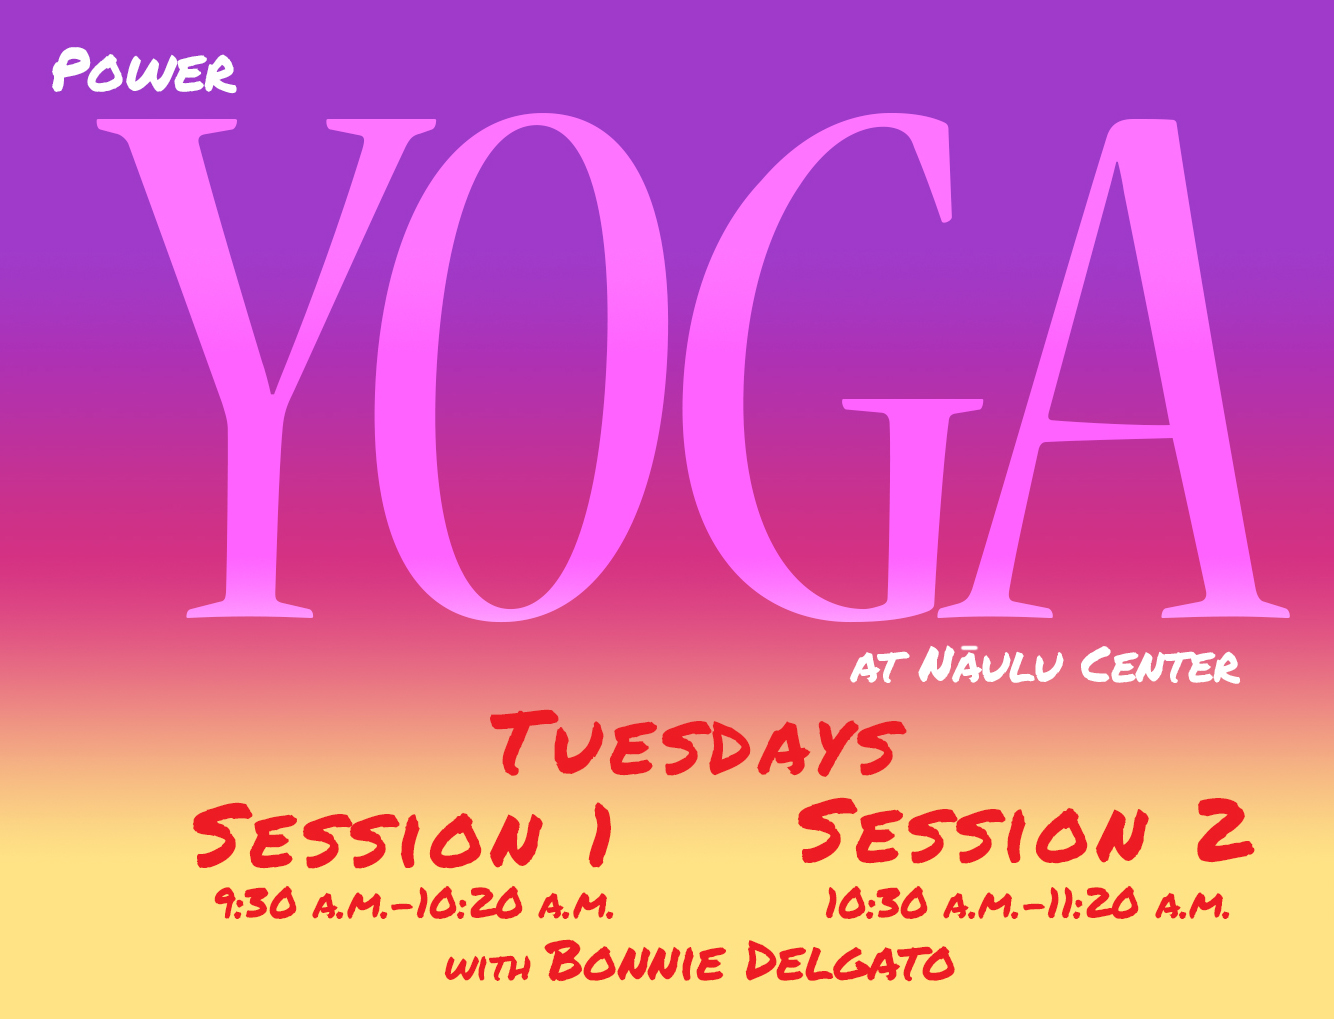 Power Core Yoga every Tuesday in Naulu Center.